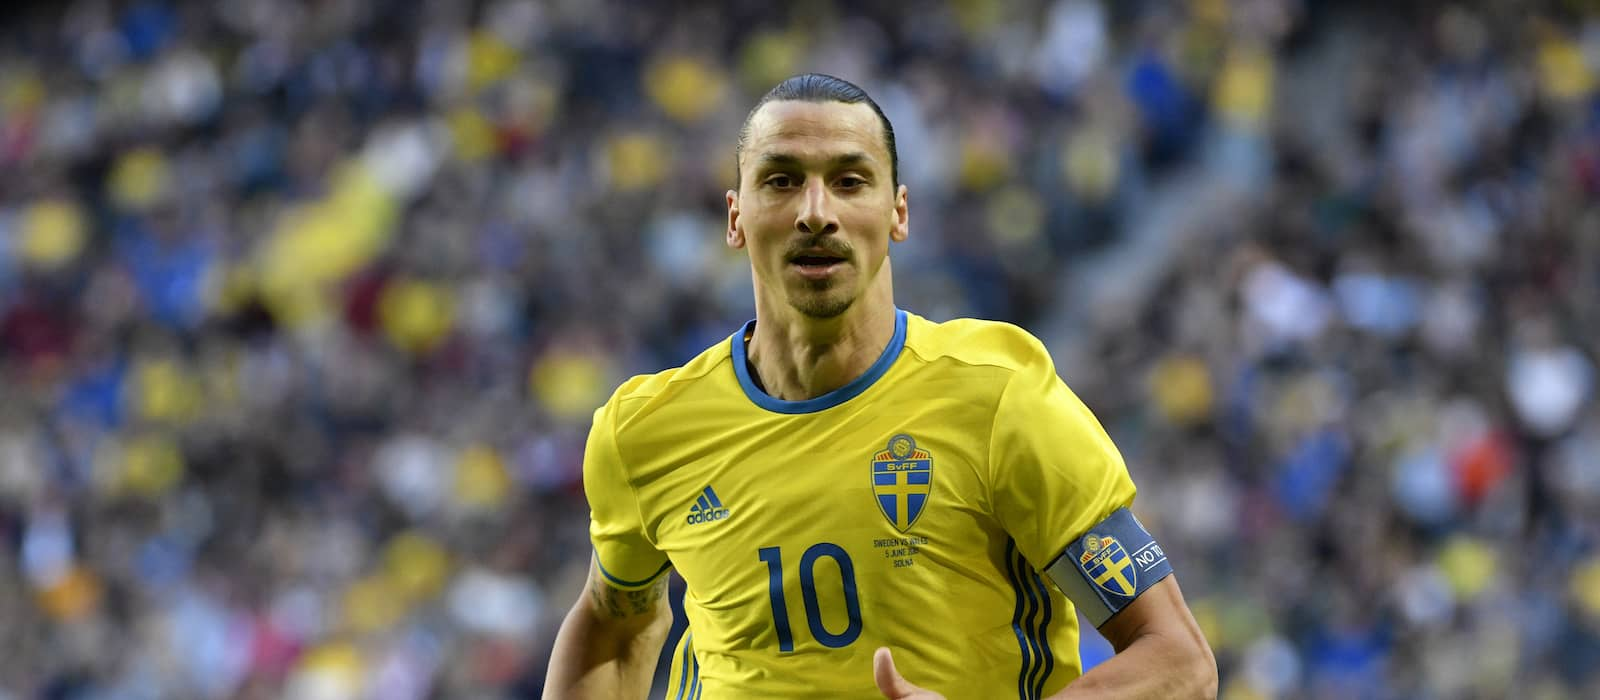 Ibrahimovic is an inspiration who will thrive at Man United says Guidetti